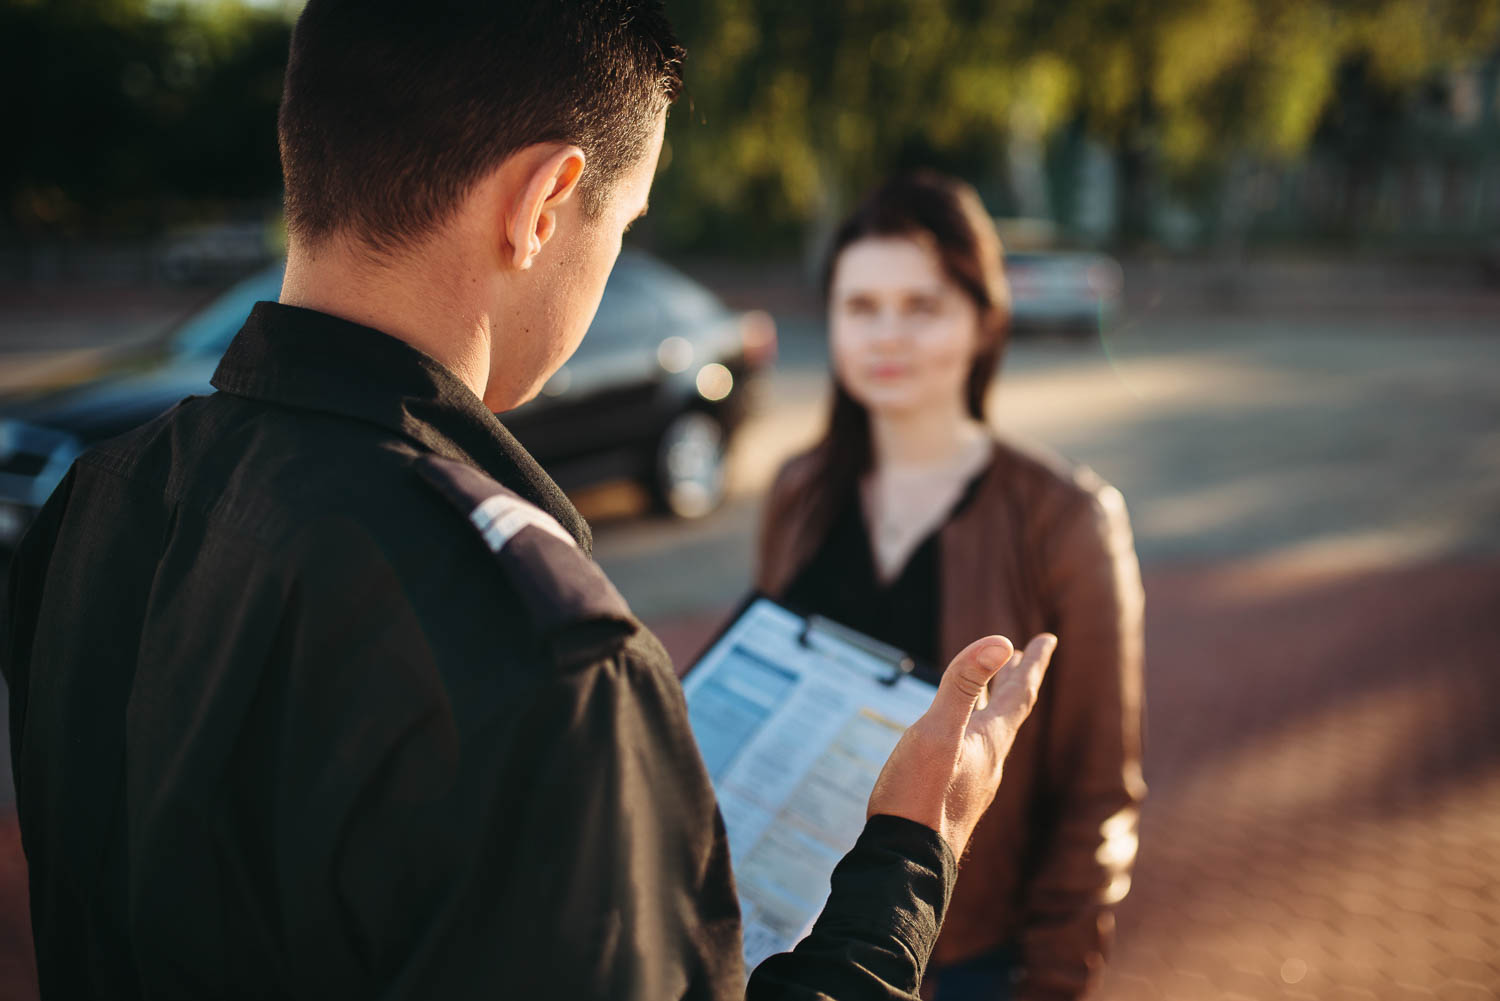 Fort Lauderdale Police explain Field Sobriety Test to woman in a DUI Investigation